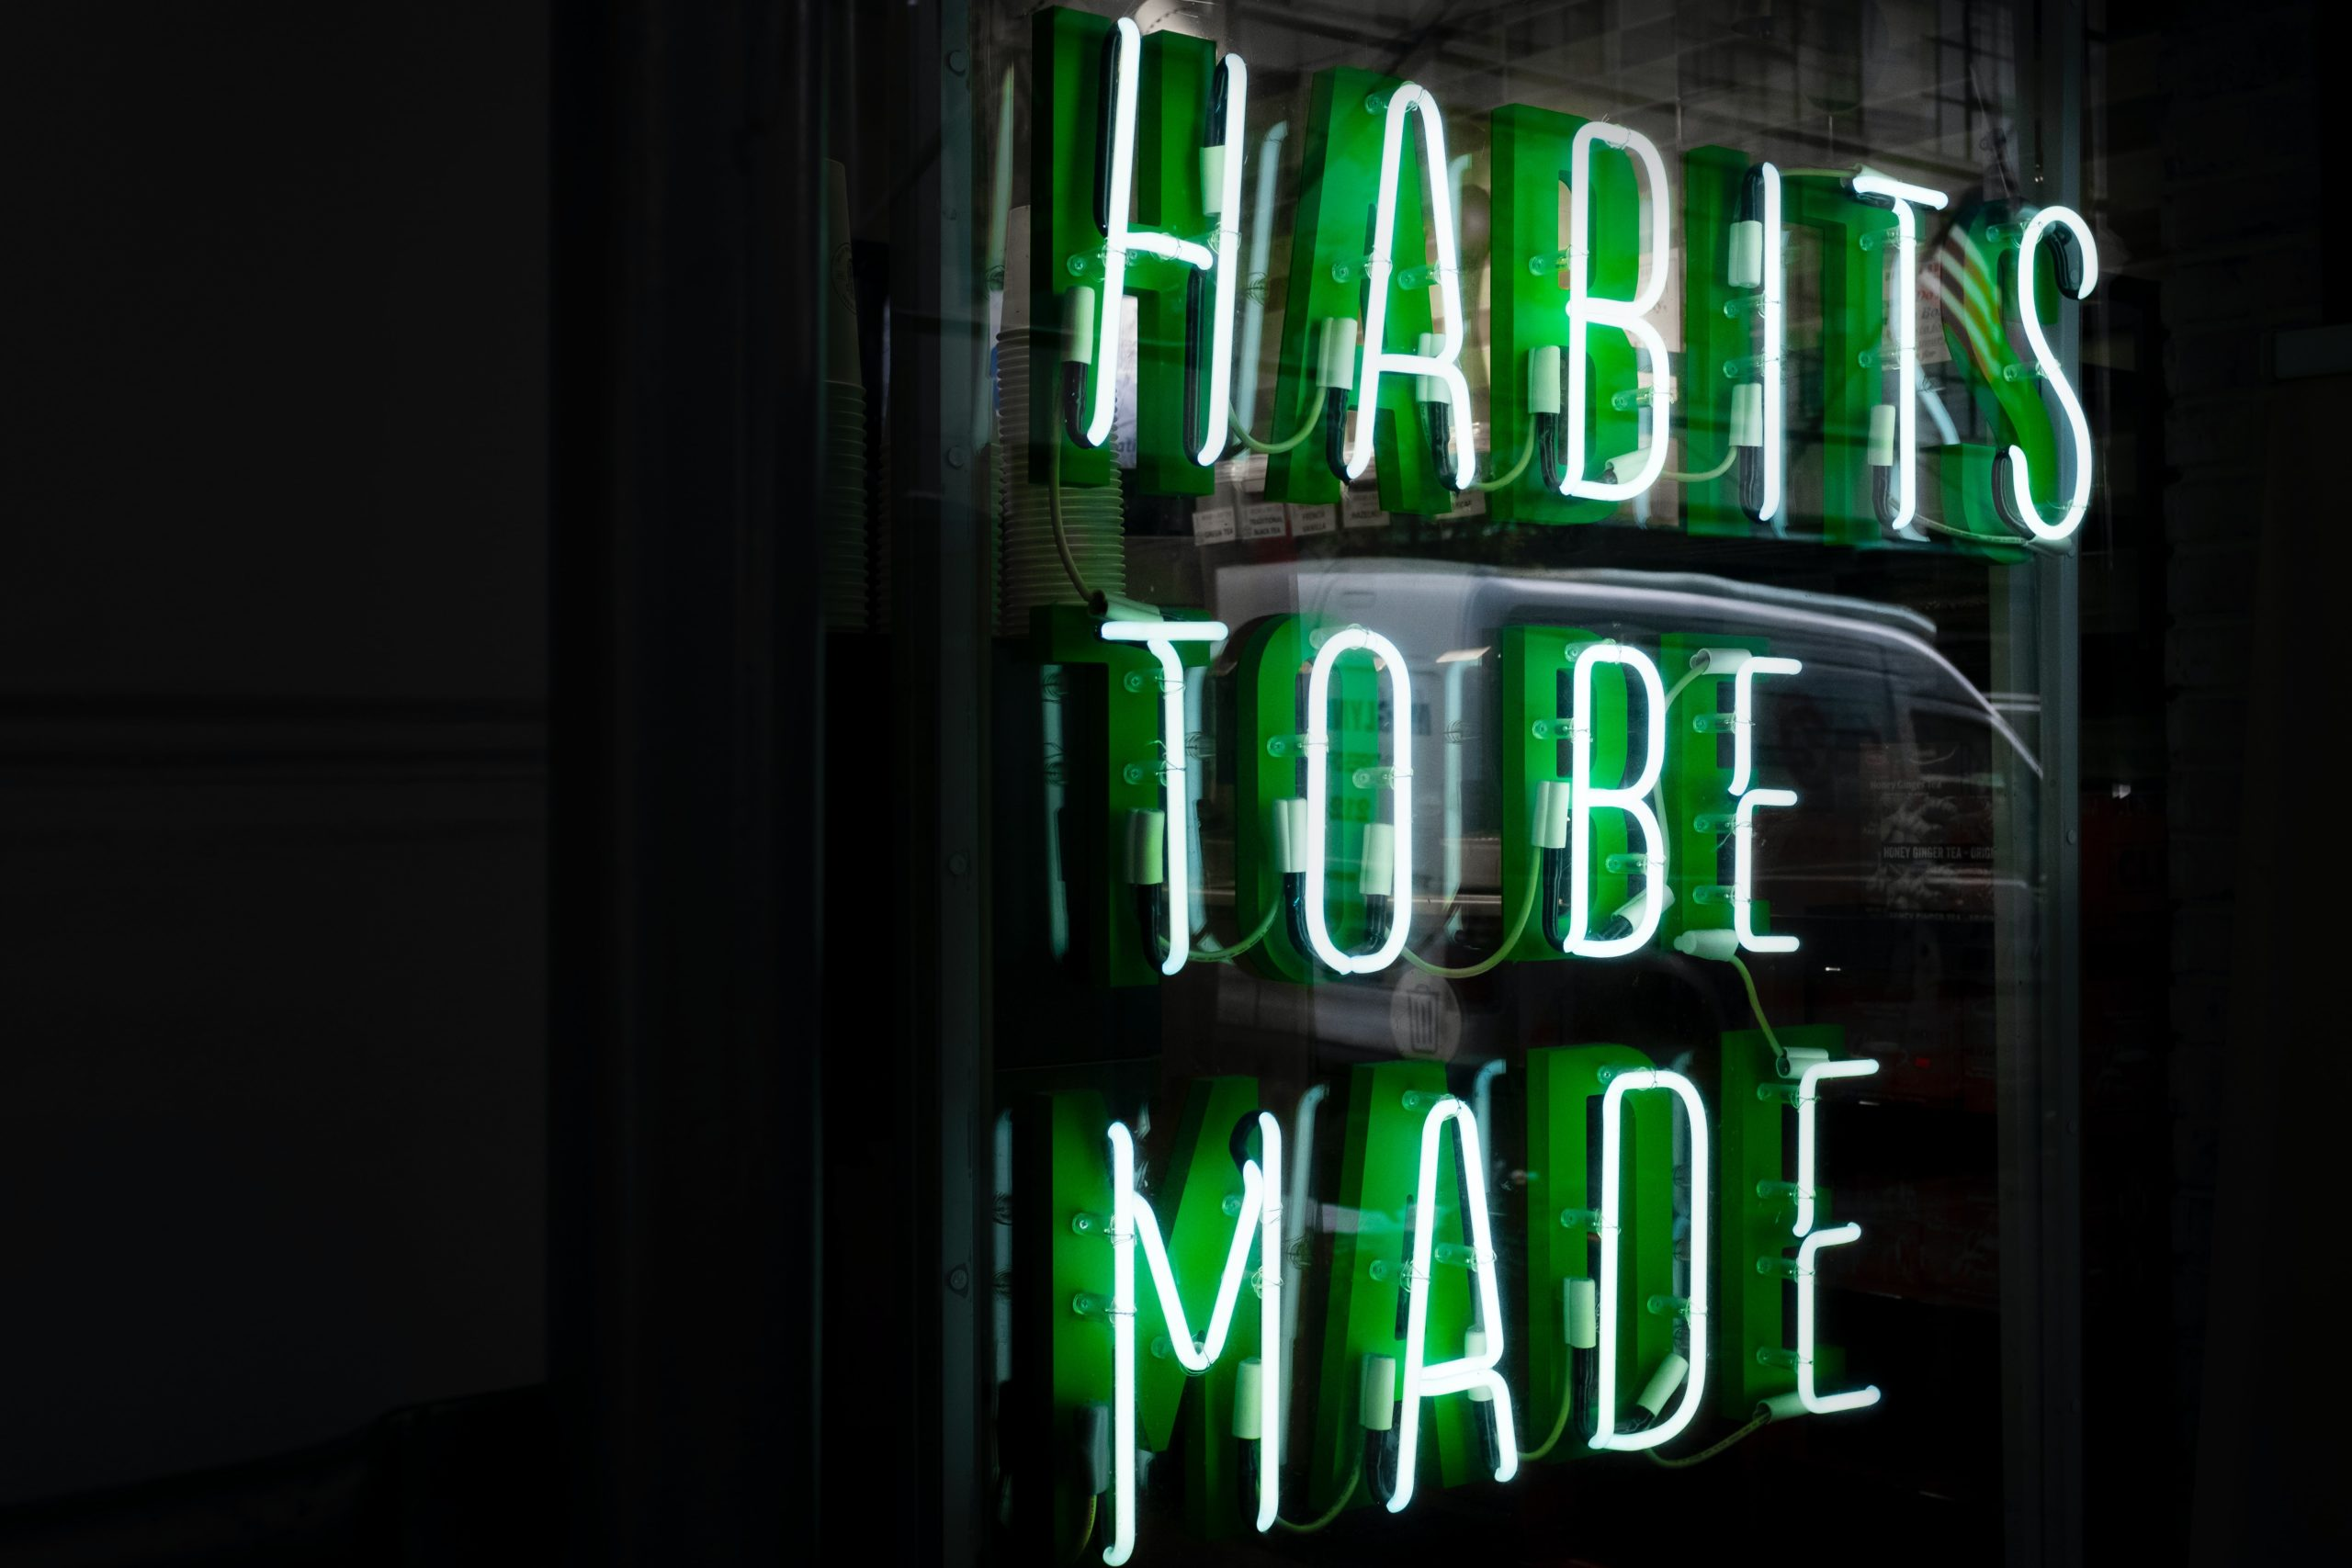 Habits to be made blog cover